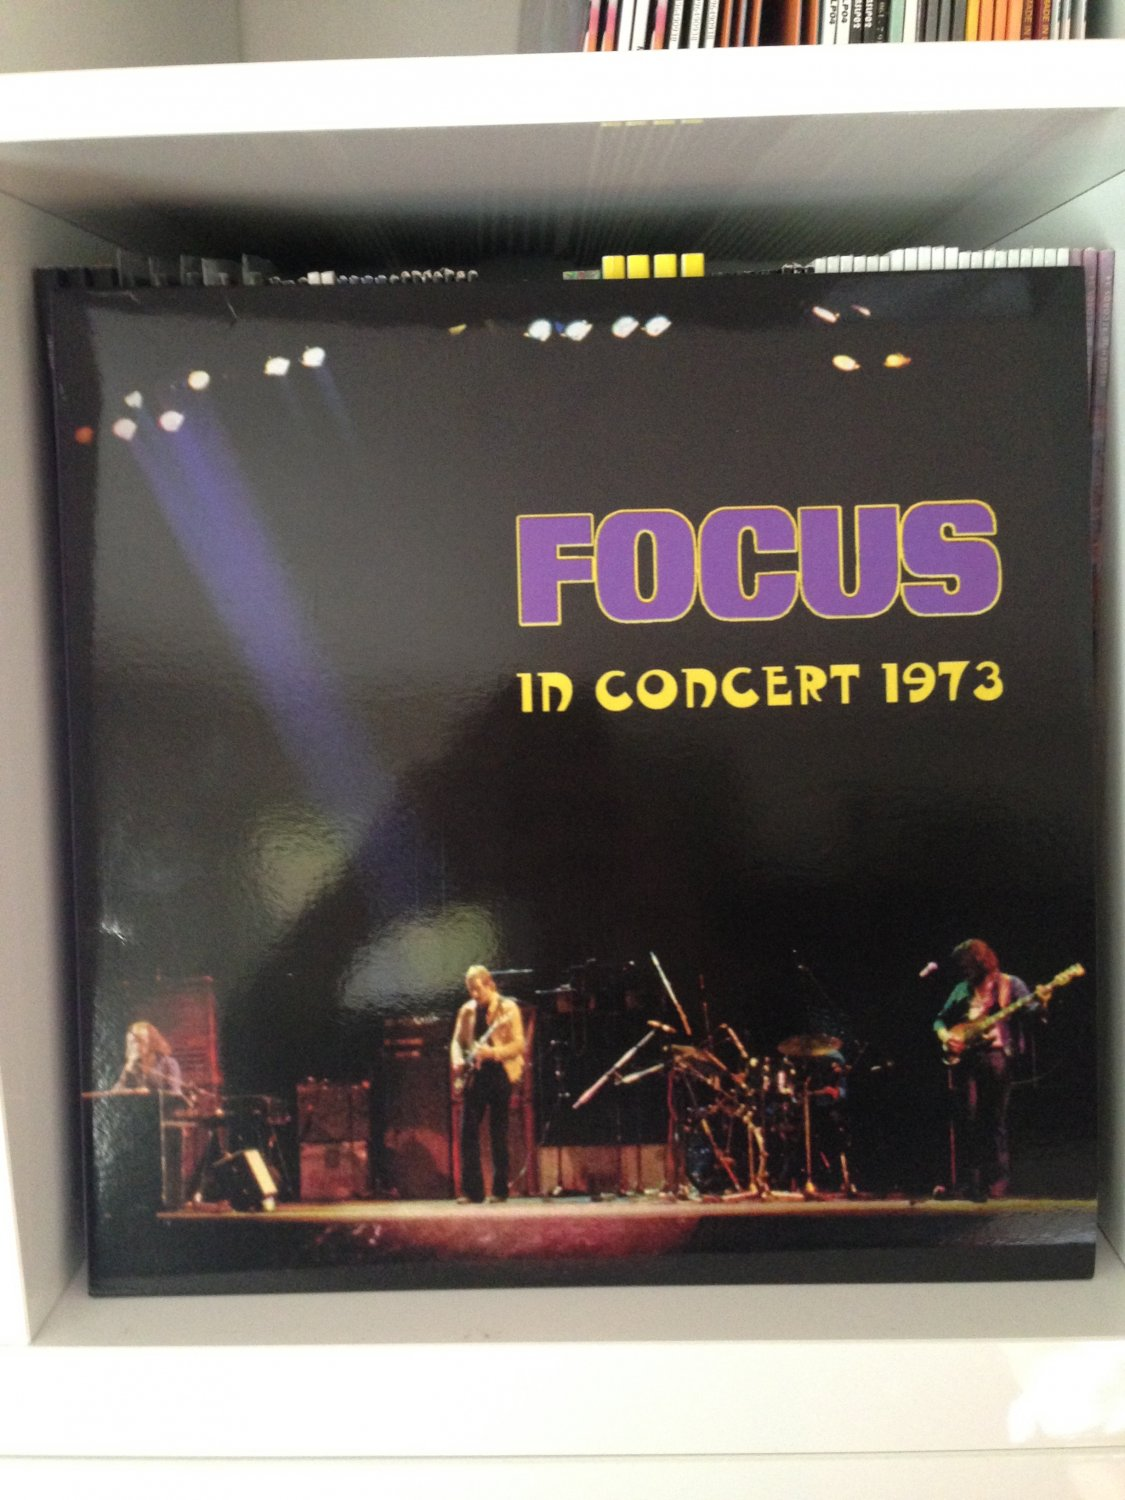 FOCUS 2LP in concert 1973